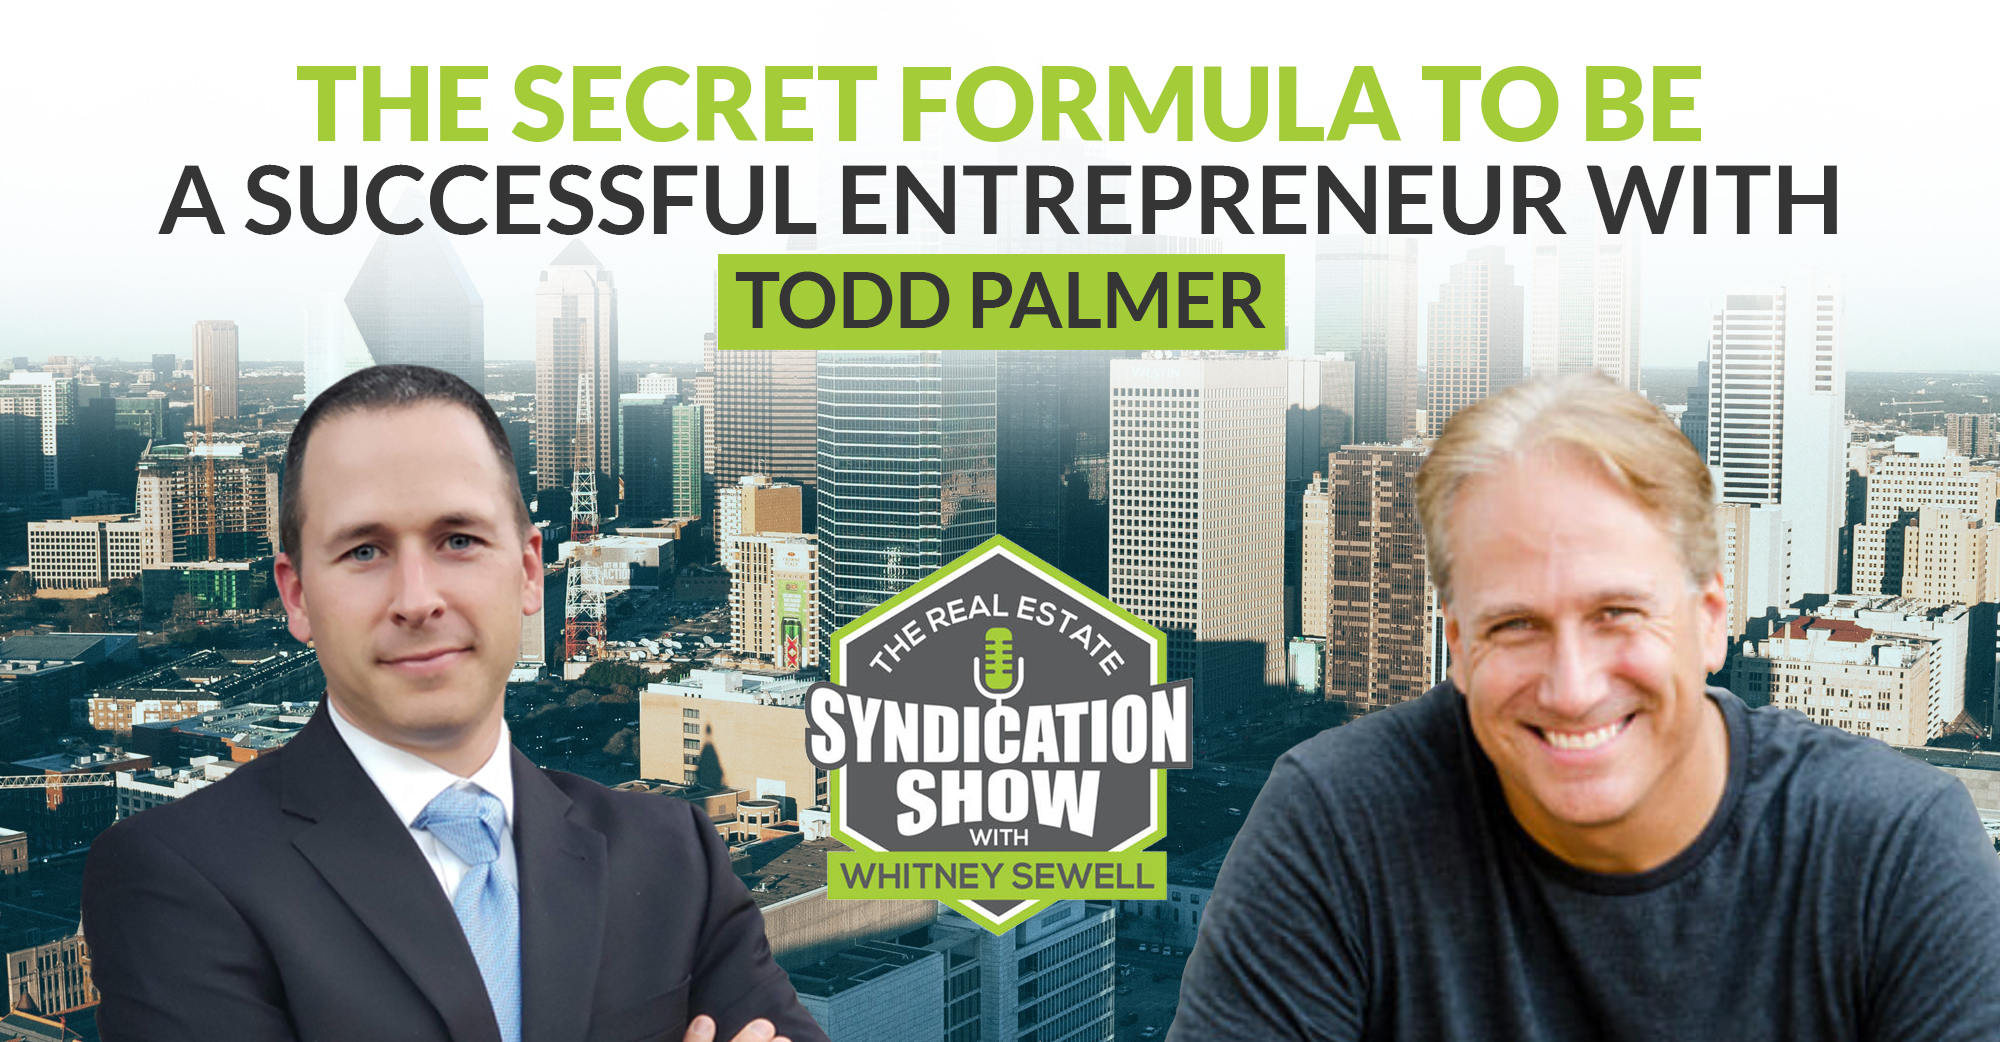 The Secret Formula To Be A Successful Entrepreneur with Todd Palmer